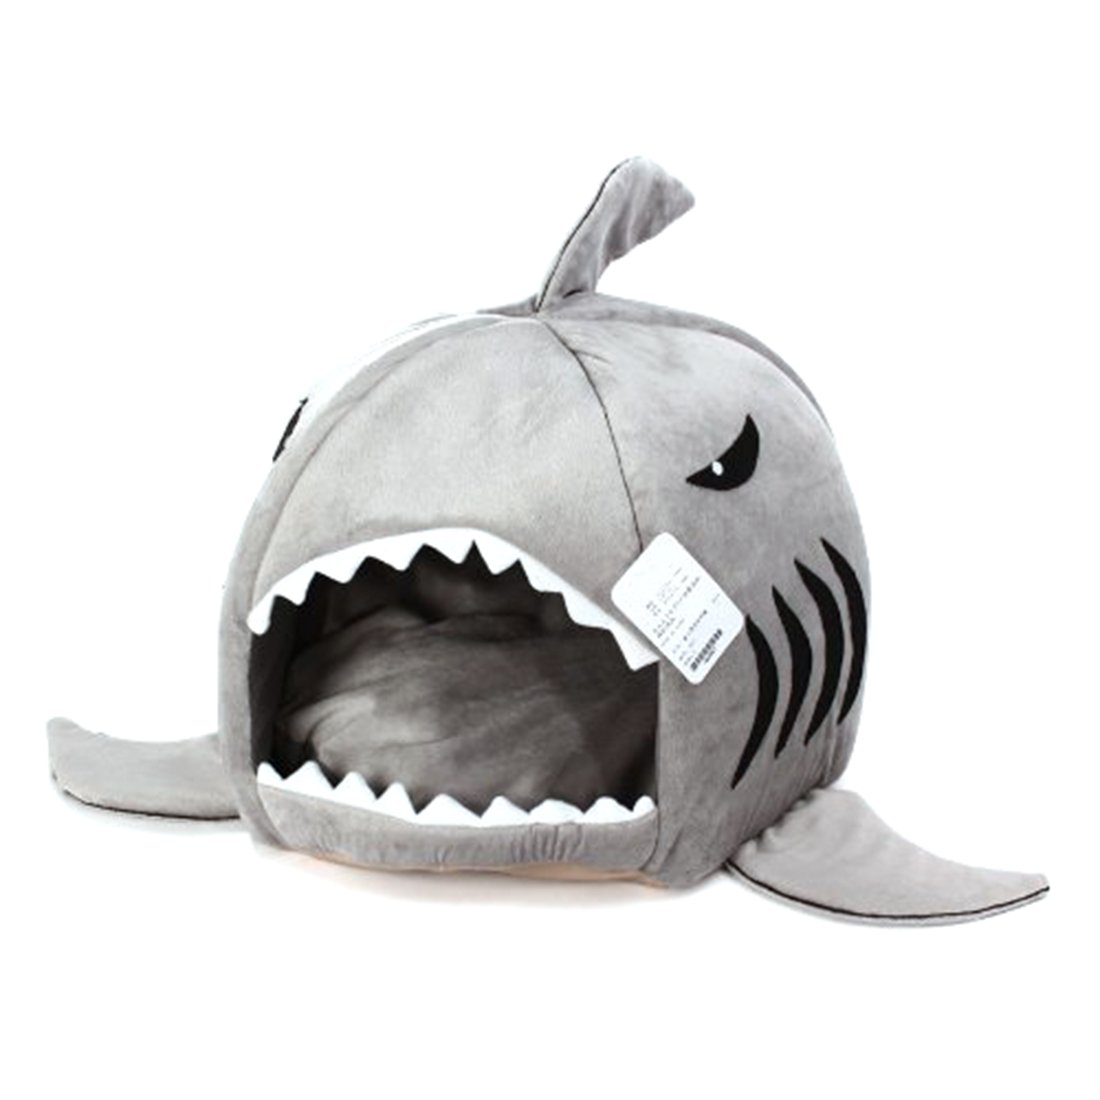 amazon com grey shark bed for small cat dog cave bed with amazon com grey shark bed for small cat dog cave bed with removable cushion waterproof bottom pet supplies